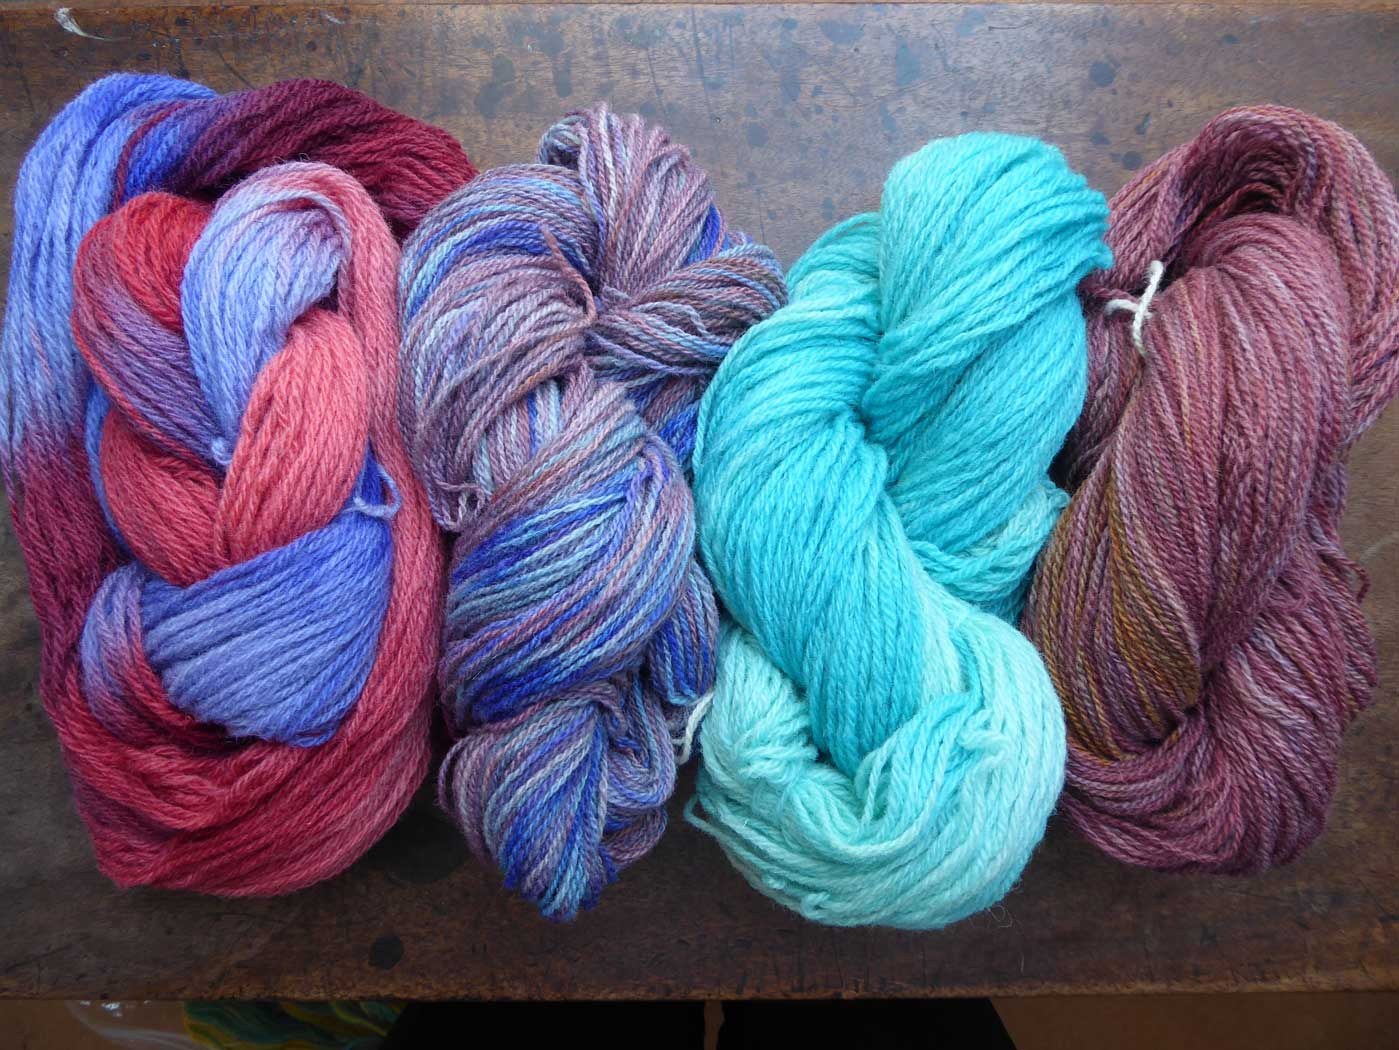 Ewingston Shetland Wool - knitwear, knitting yarn and wool craft supplies image 3